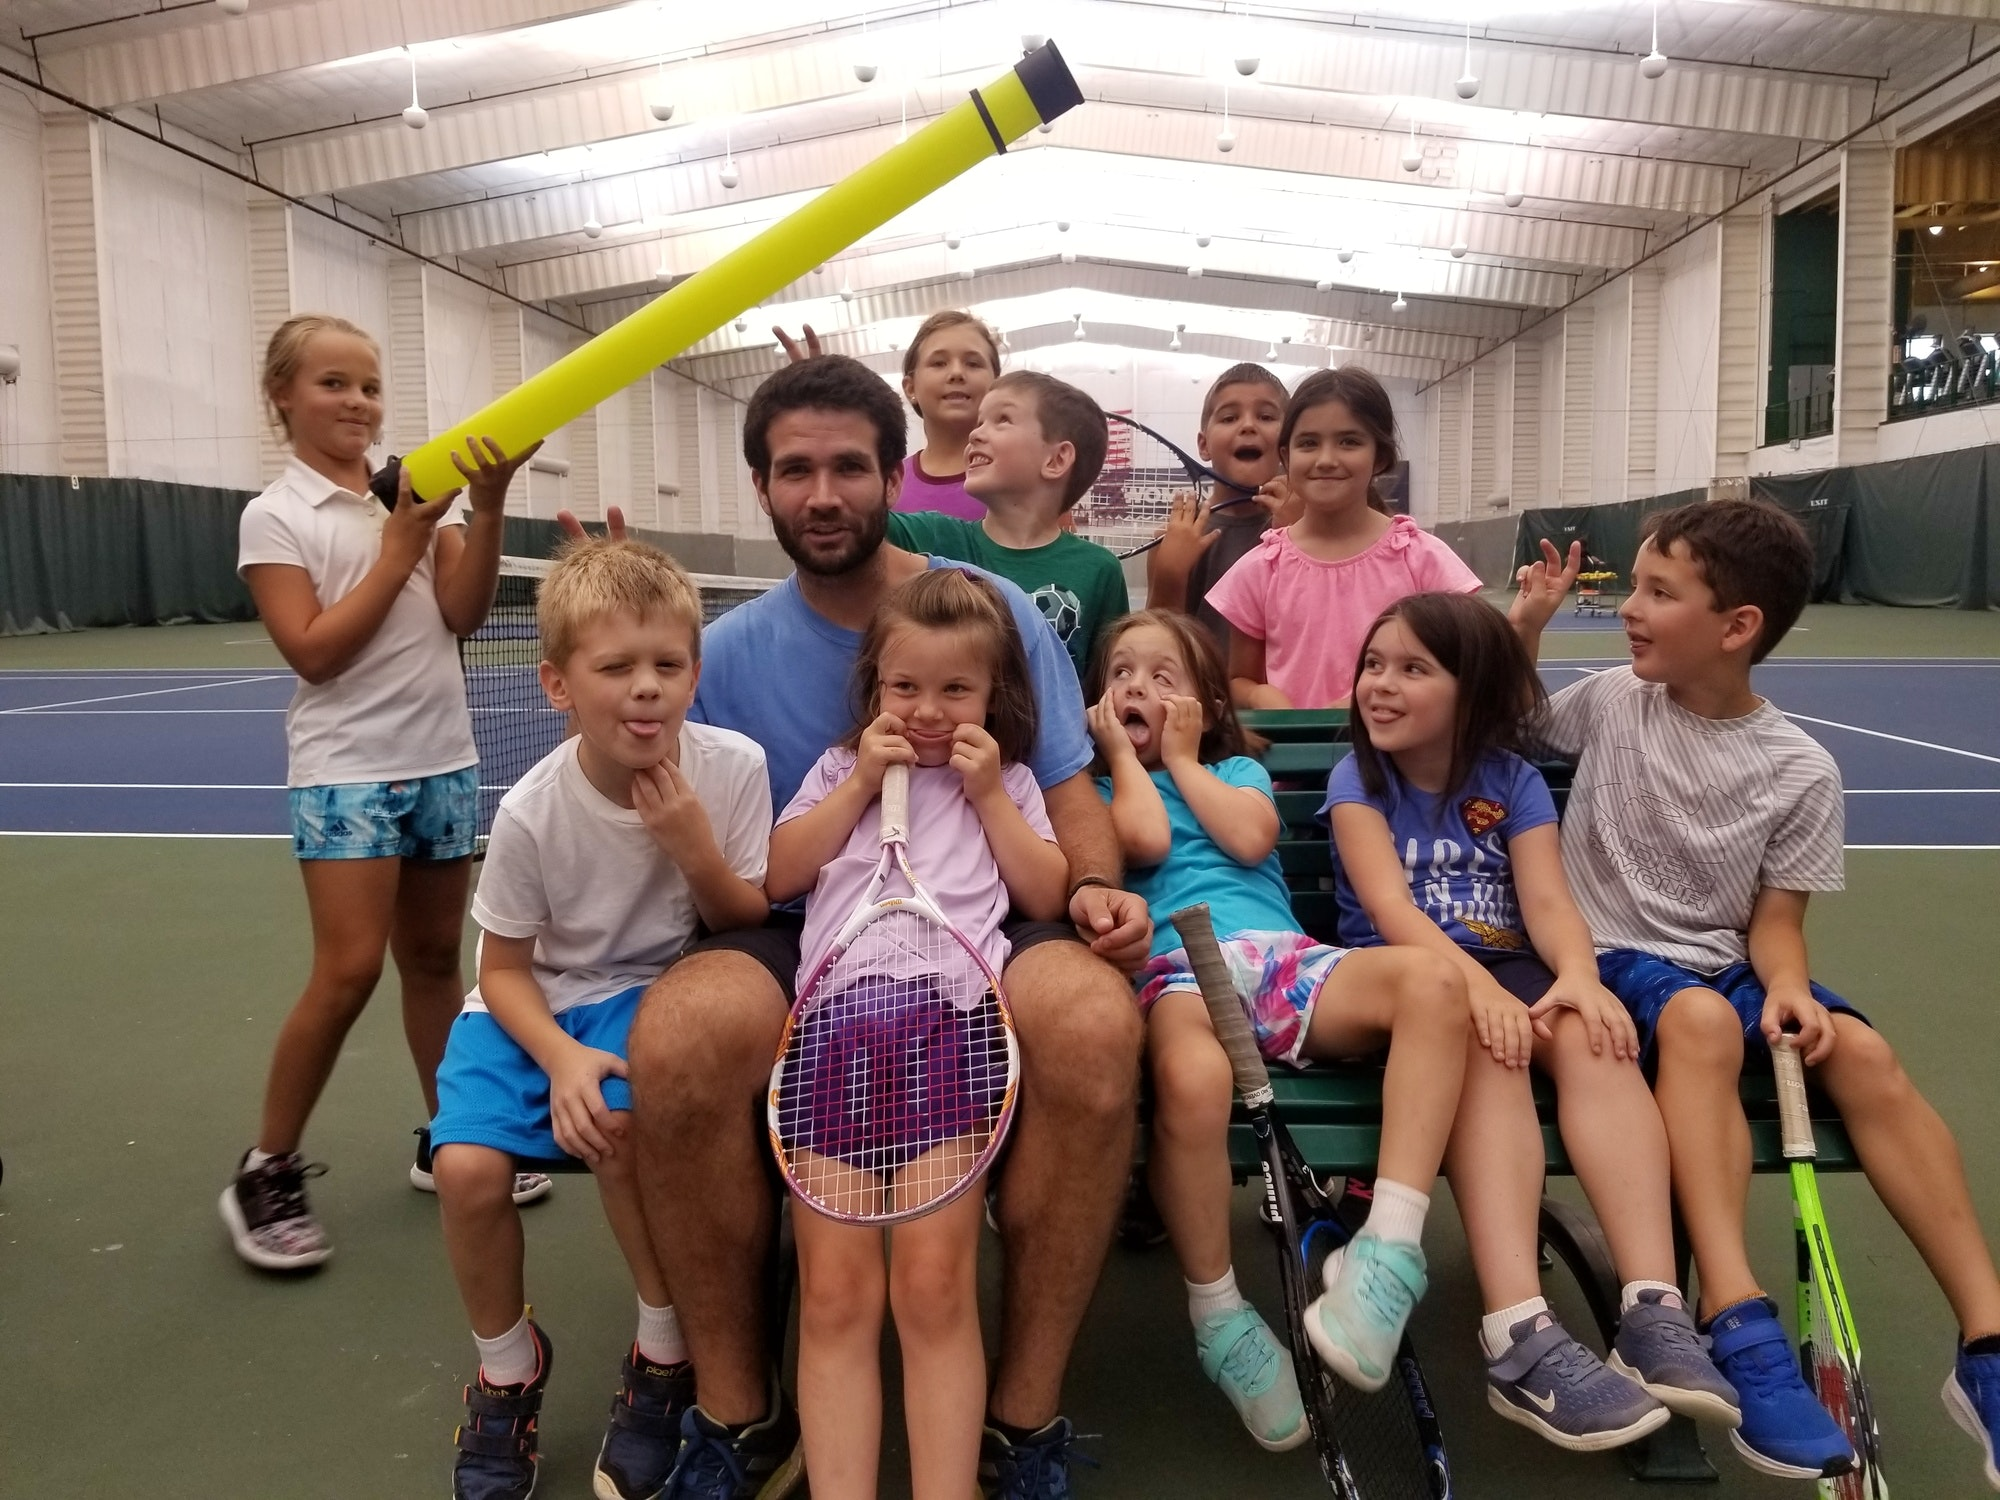 Sam H. teaches tennis lessons in Greenbelt, MD